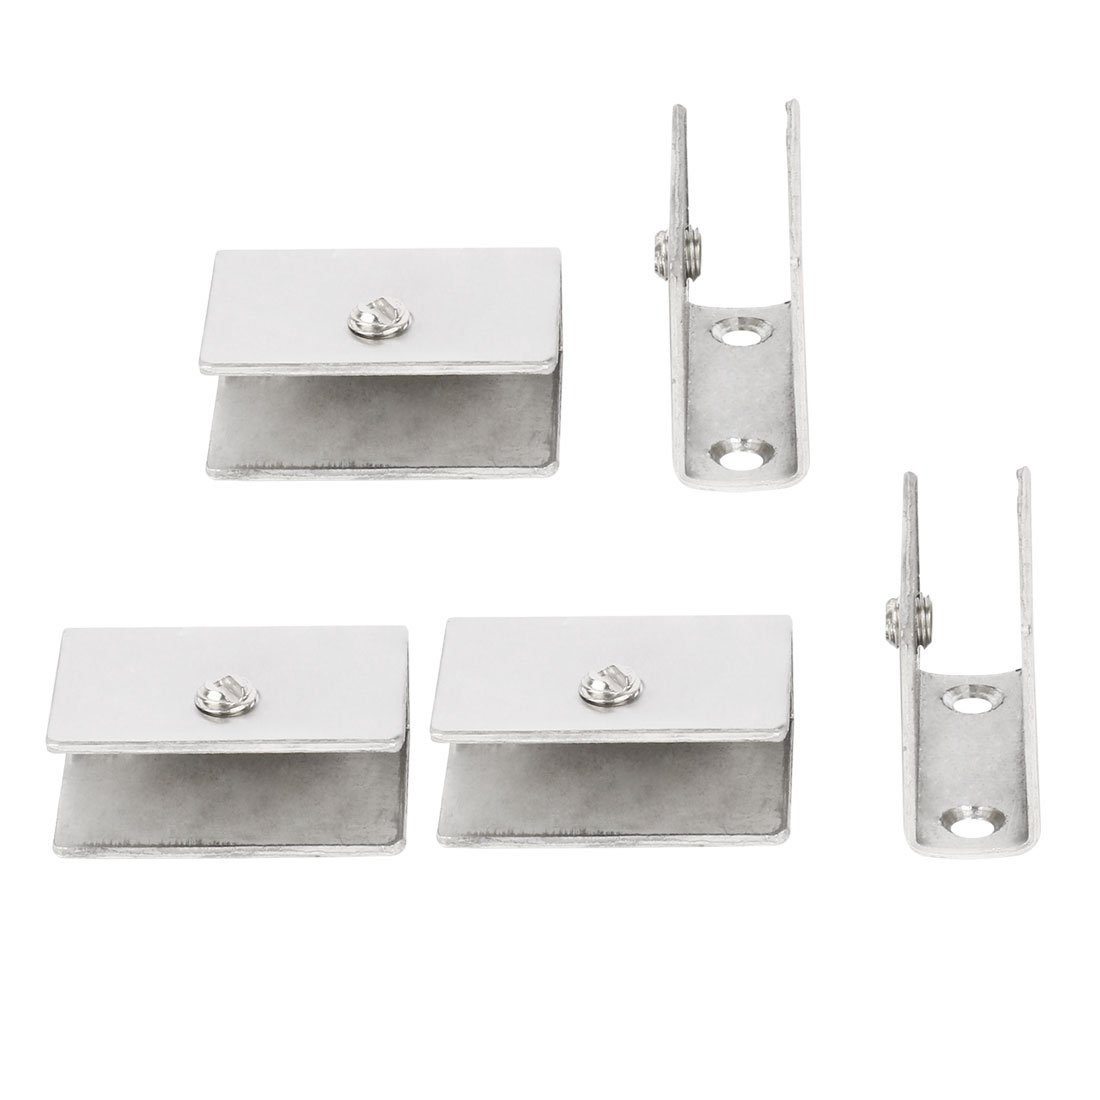 uxcell Adjustable Brushed Stainless Steel Door Glass Shelf Clamp Brackets Clips Holder Support 5pcs